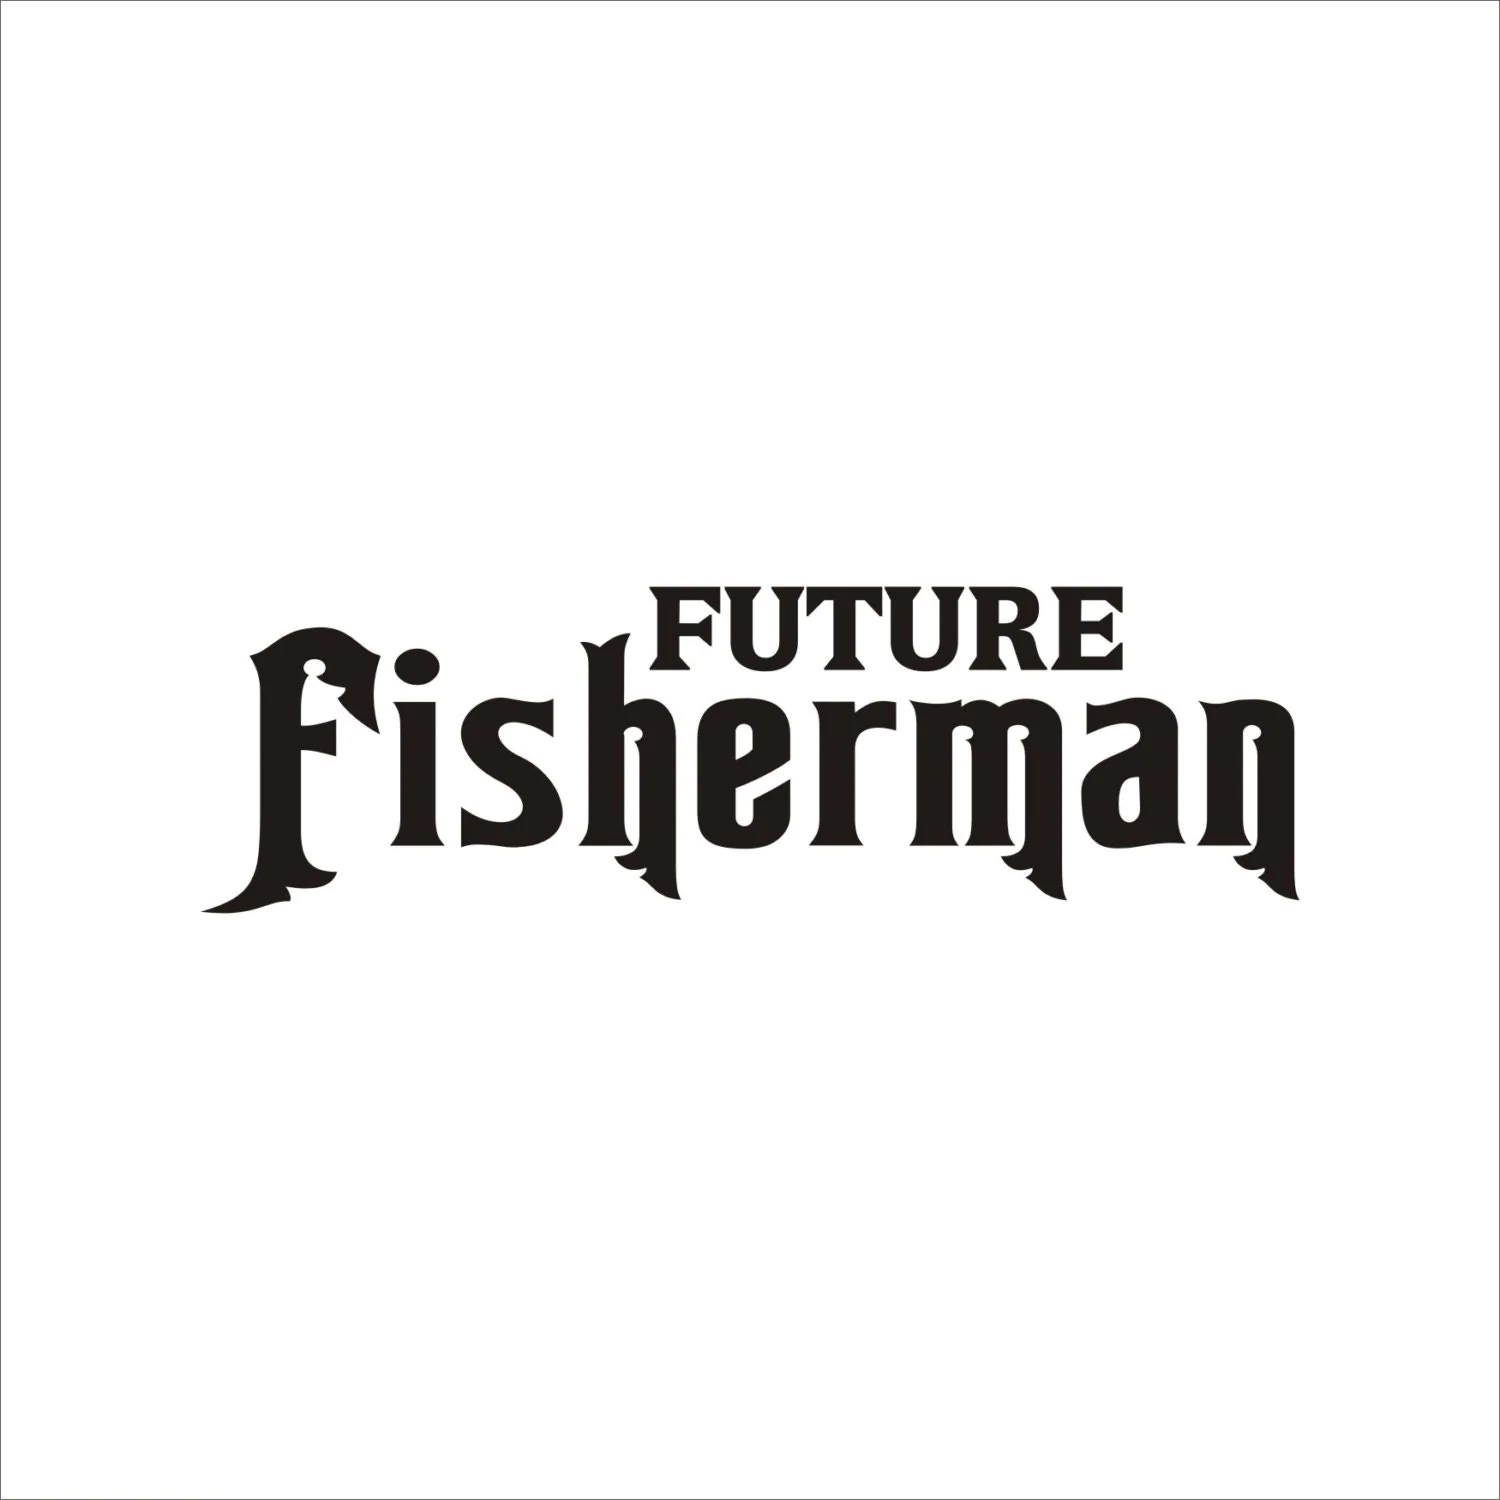 Future Fisherman Decal Sticker